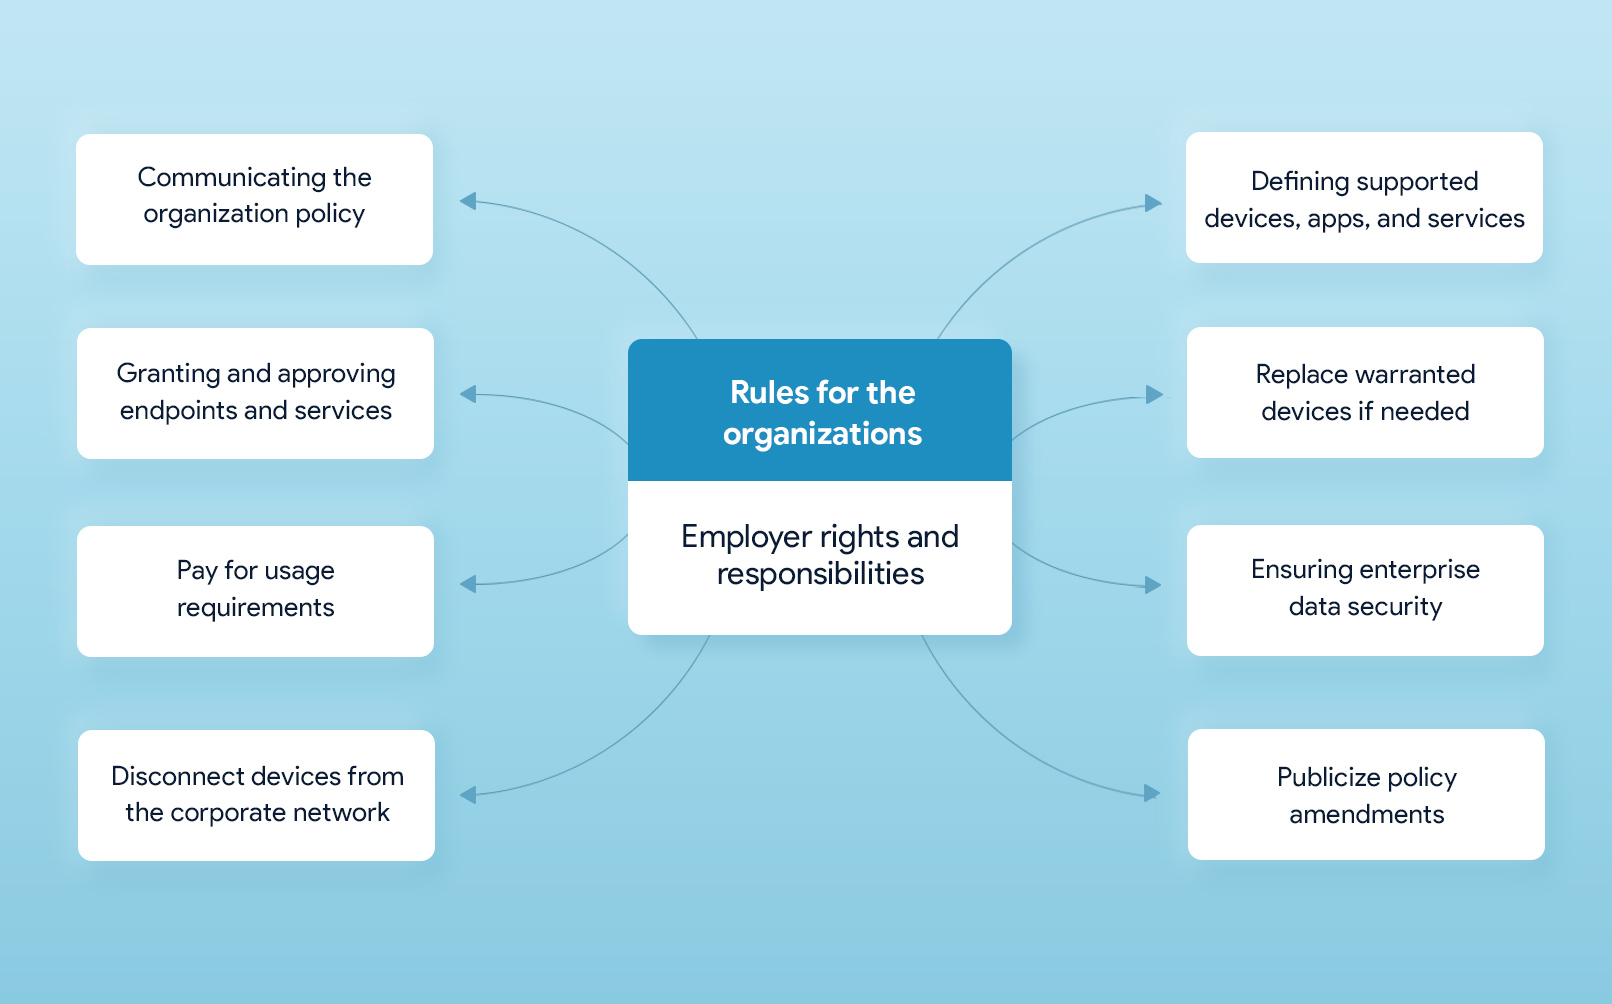 Employer rights and responsibilities